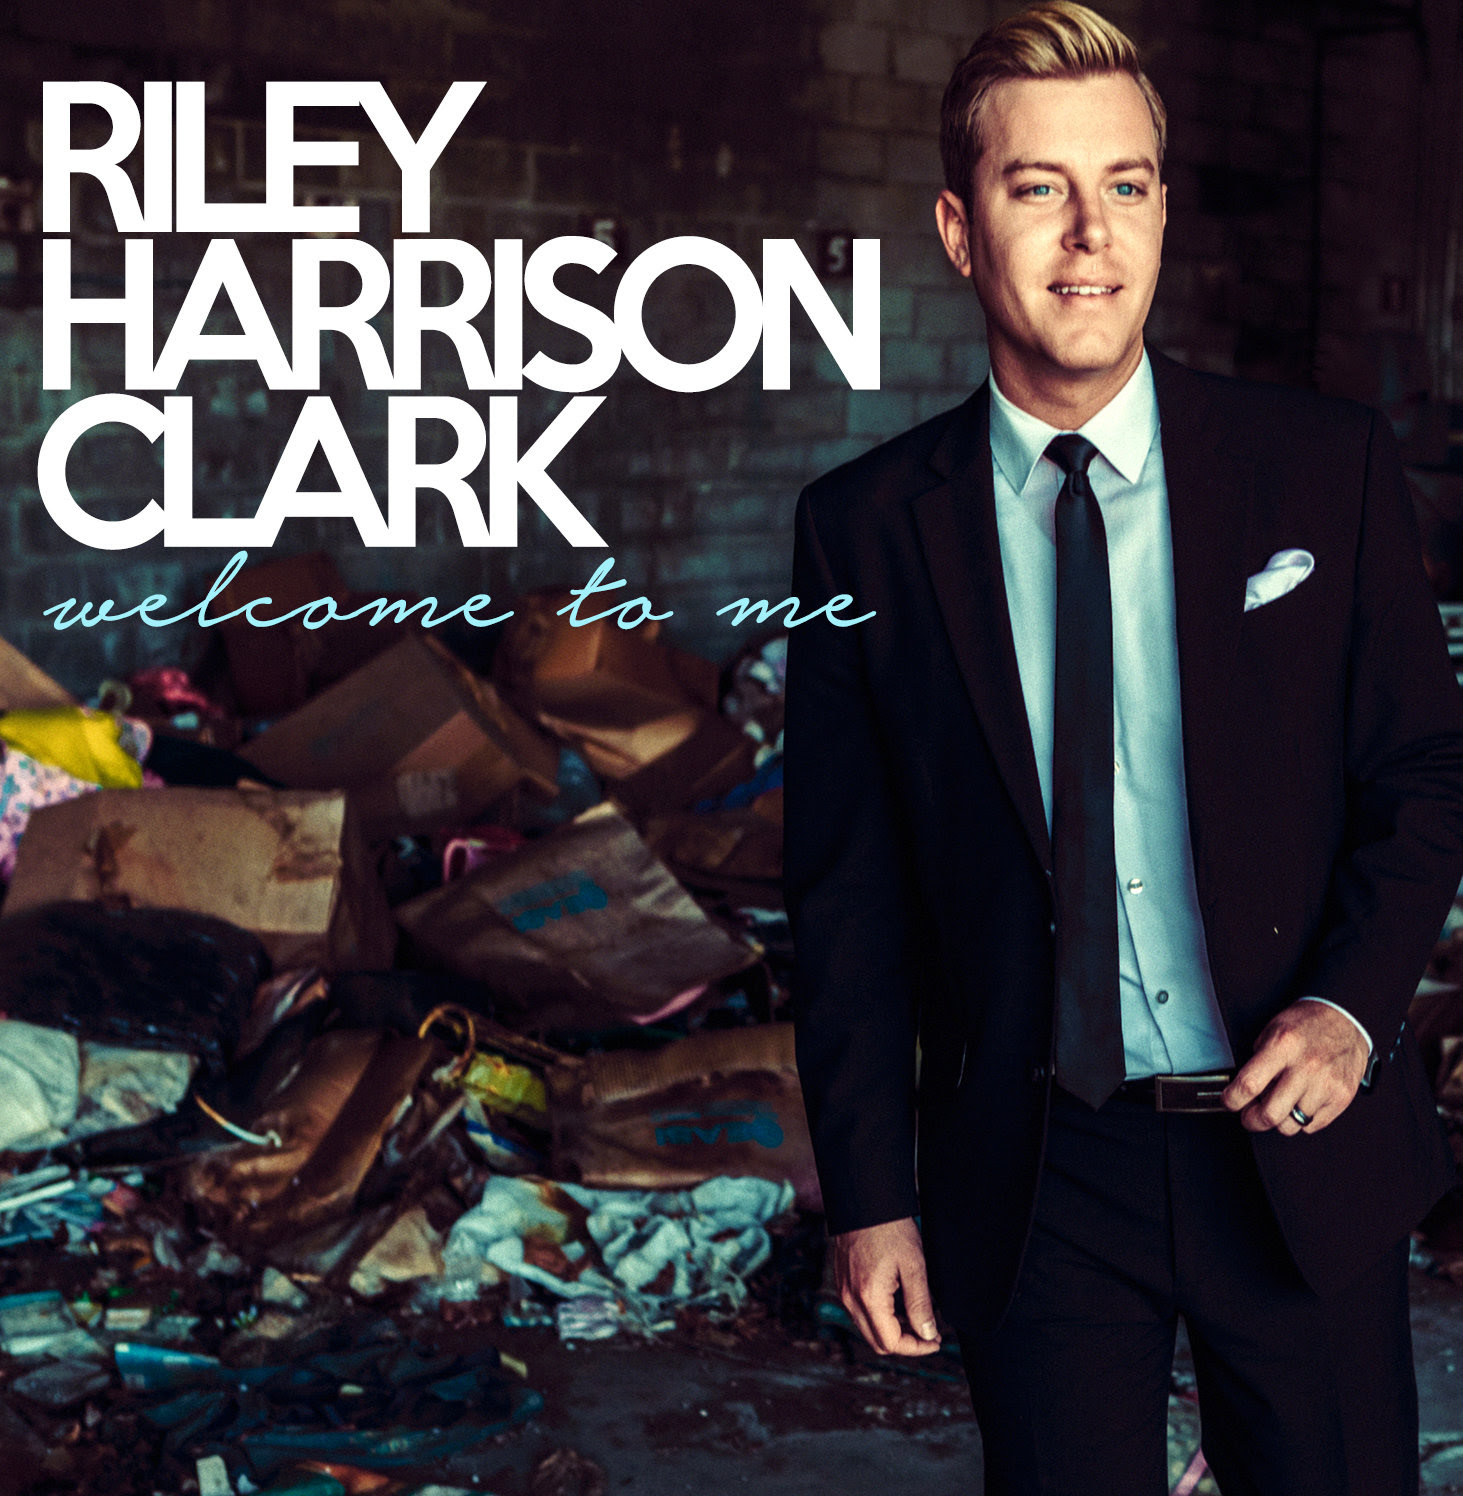 Riley Harrison Clark's Debut Album, Welcome To Me